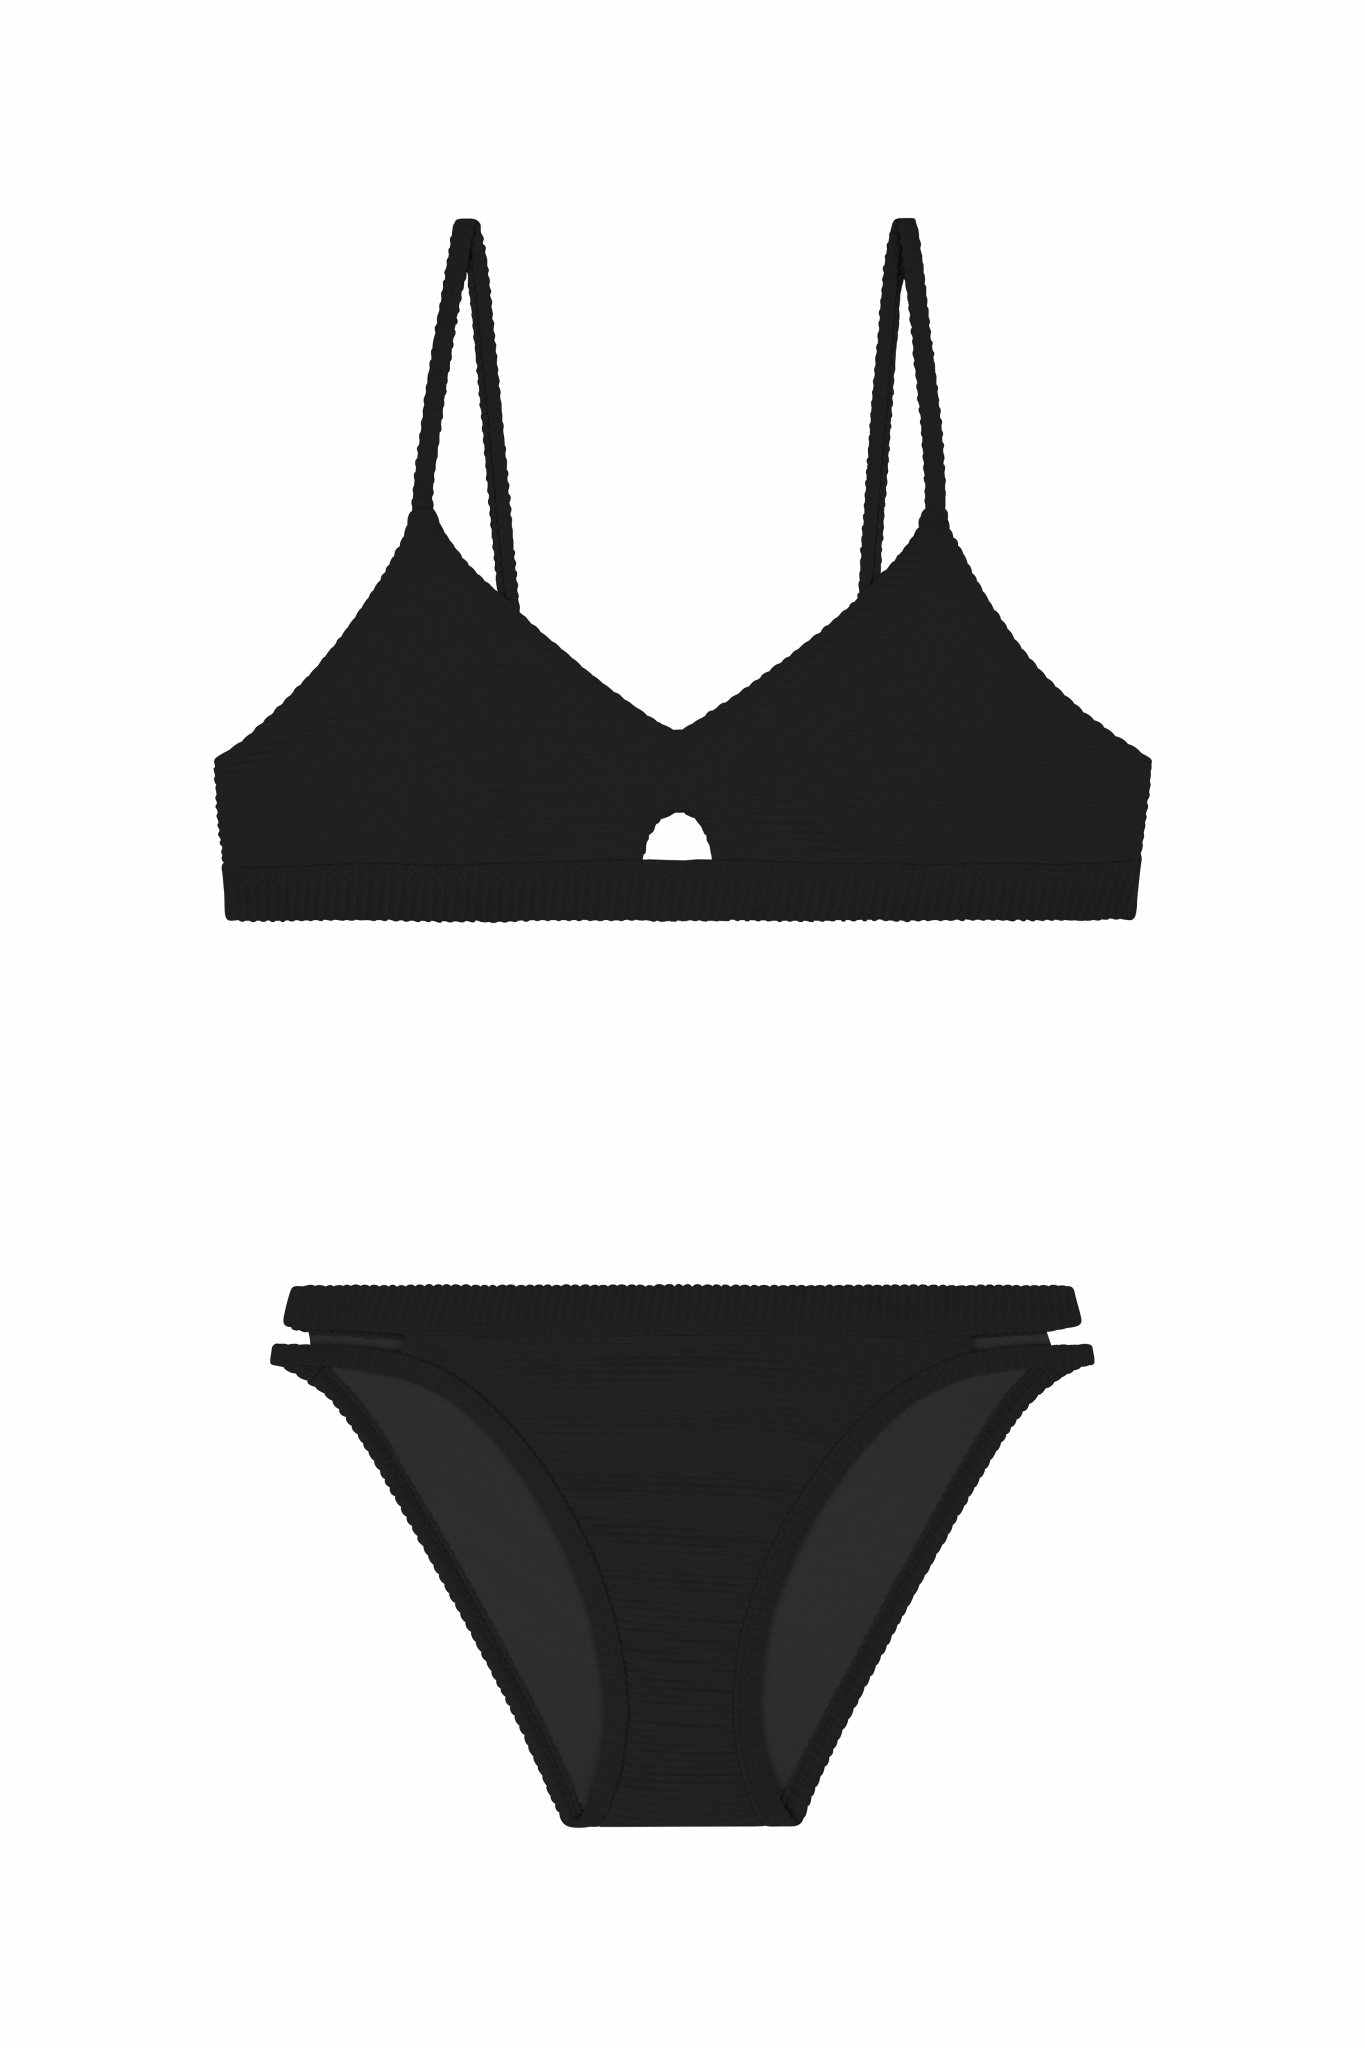 Seafolly Girls Bralette Tankini - Summer Essentials